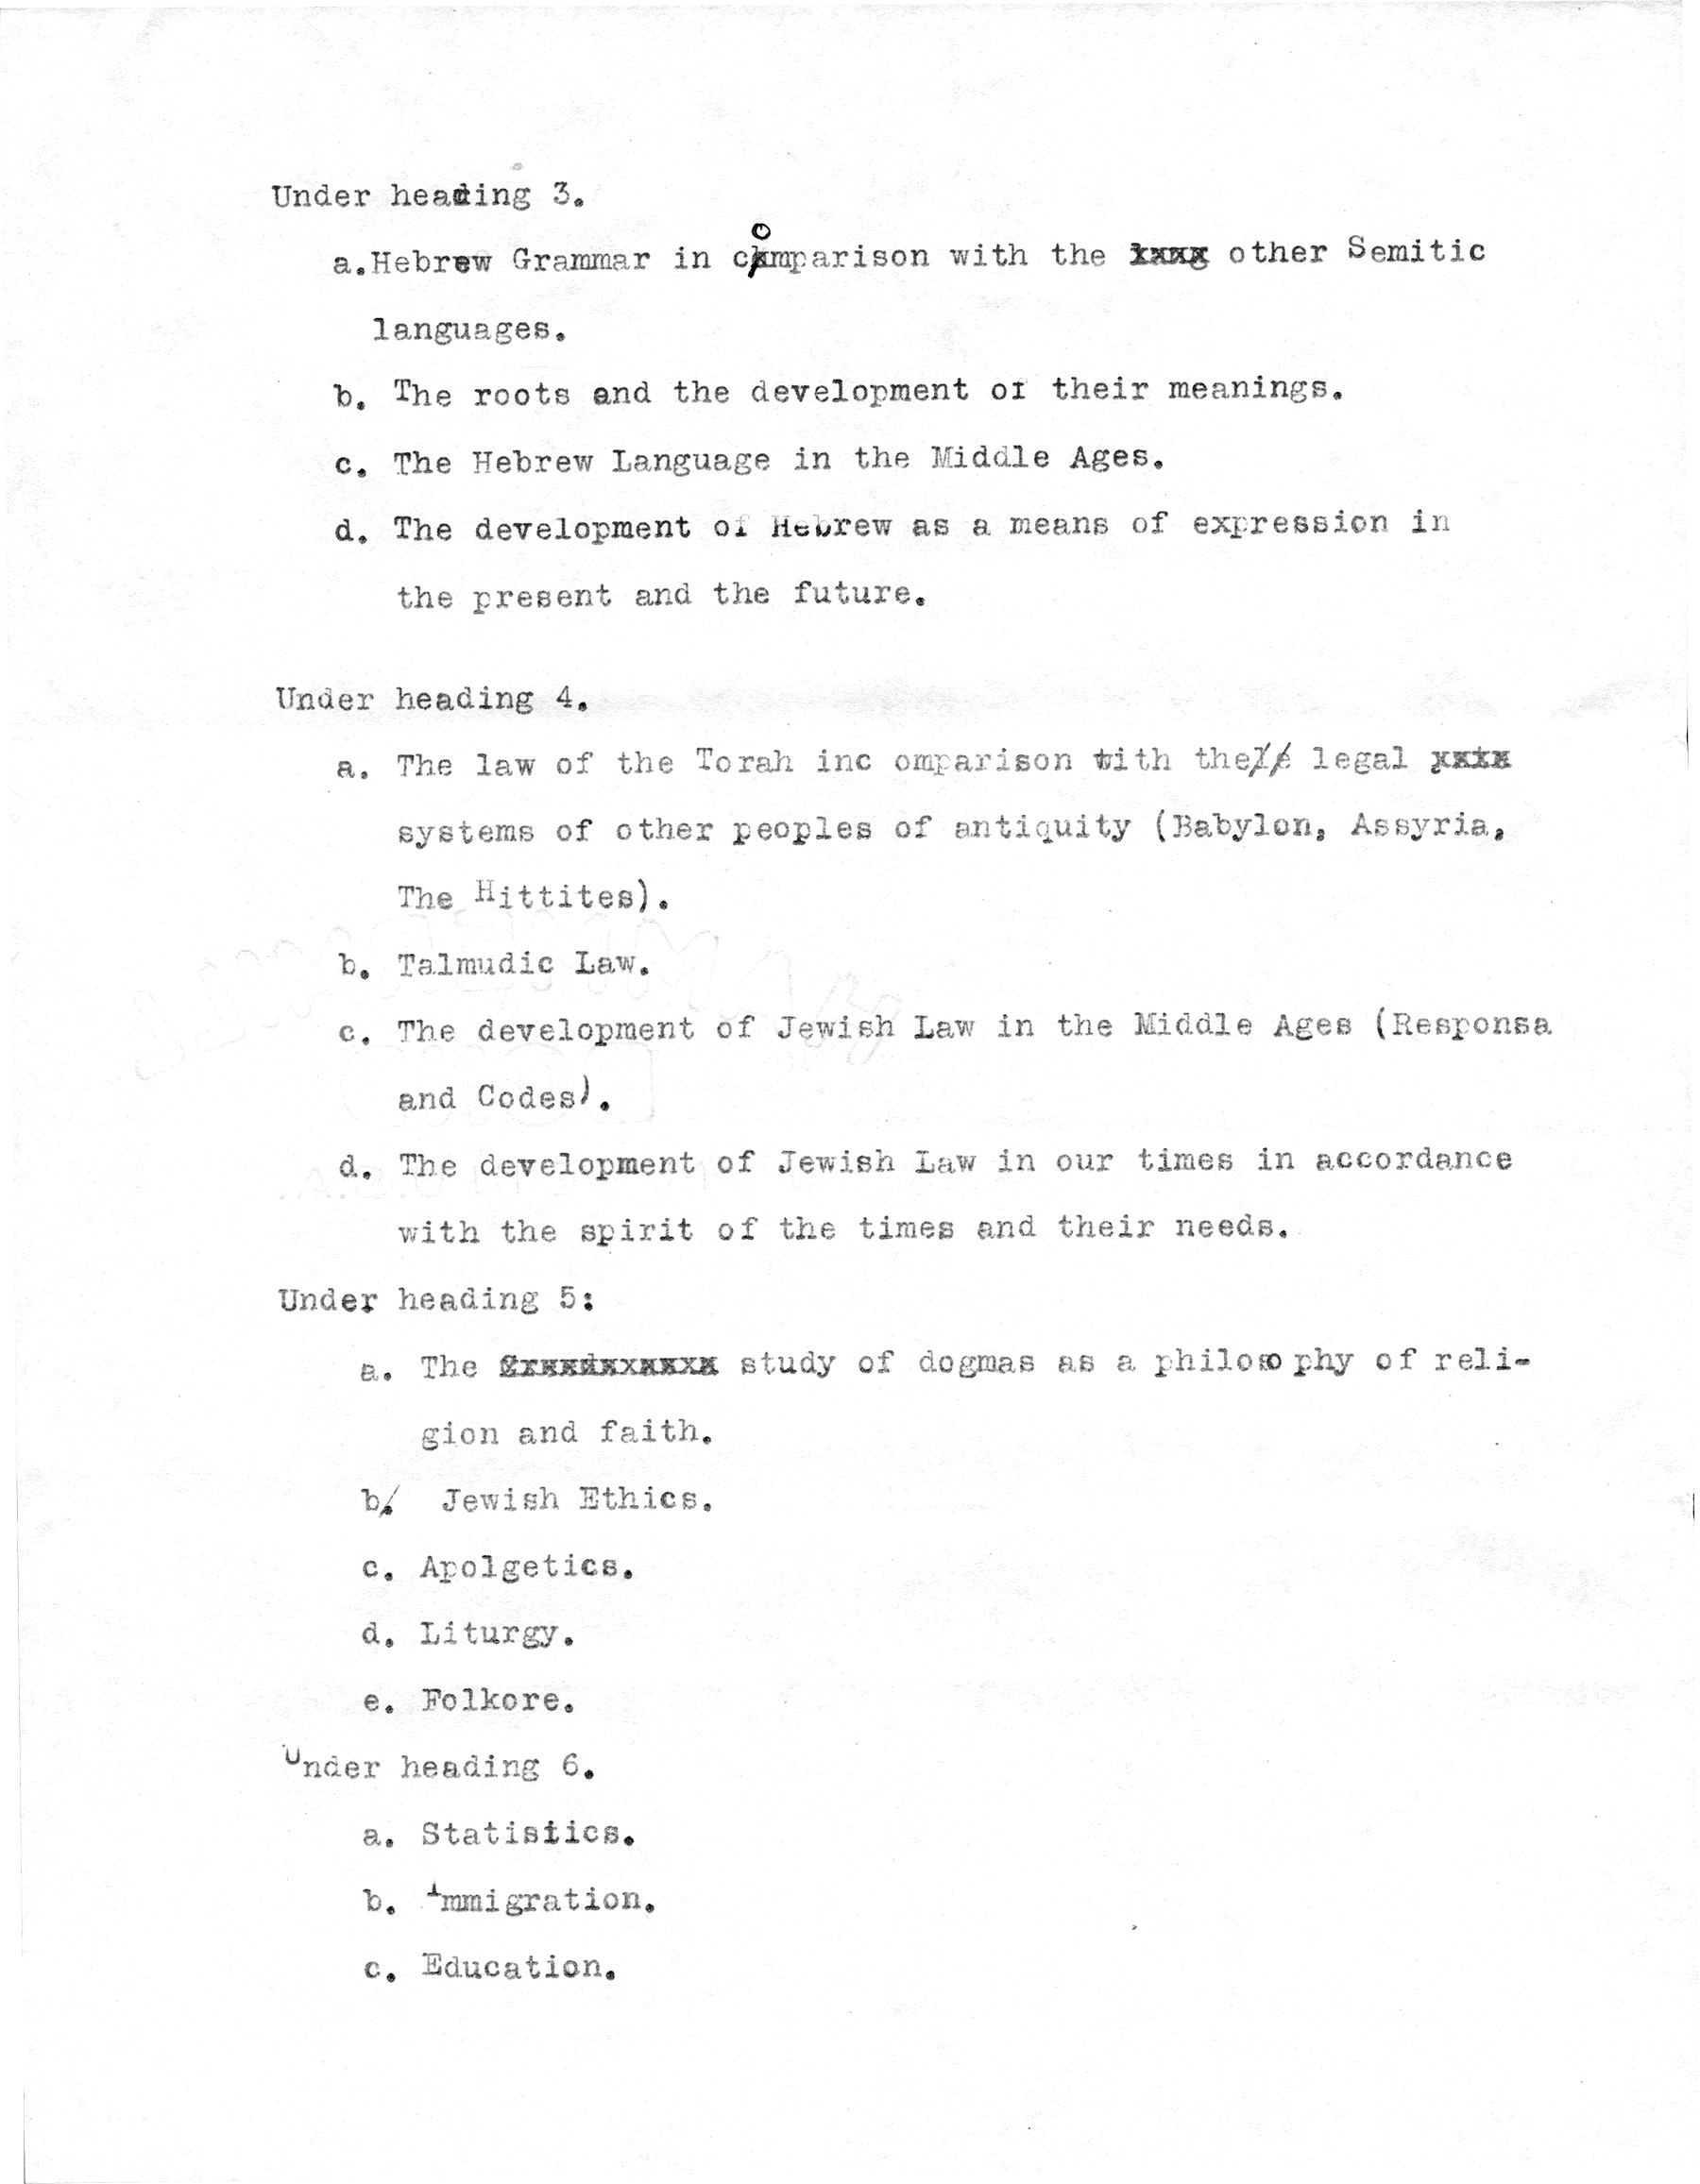 General Programme of the Congress, page 2